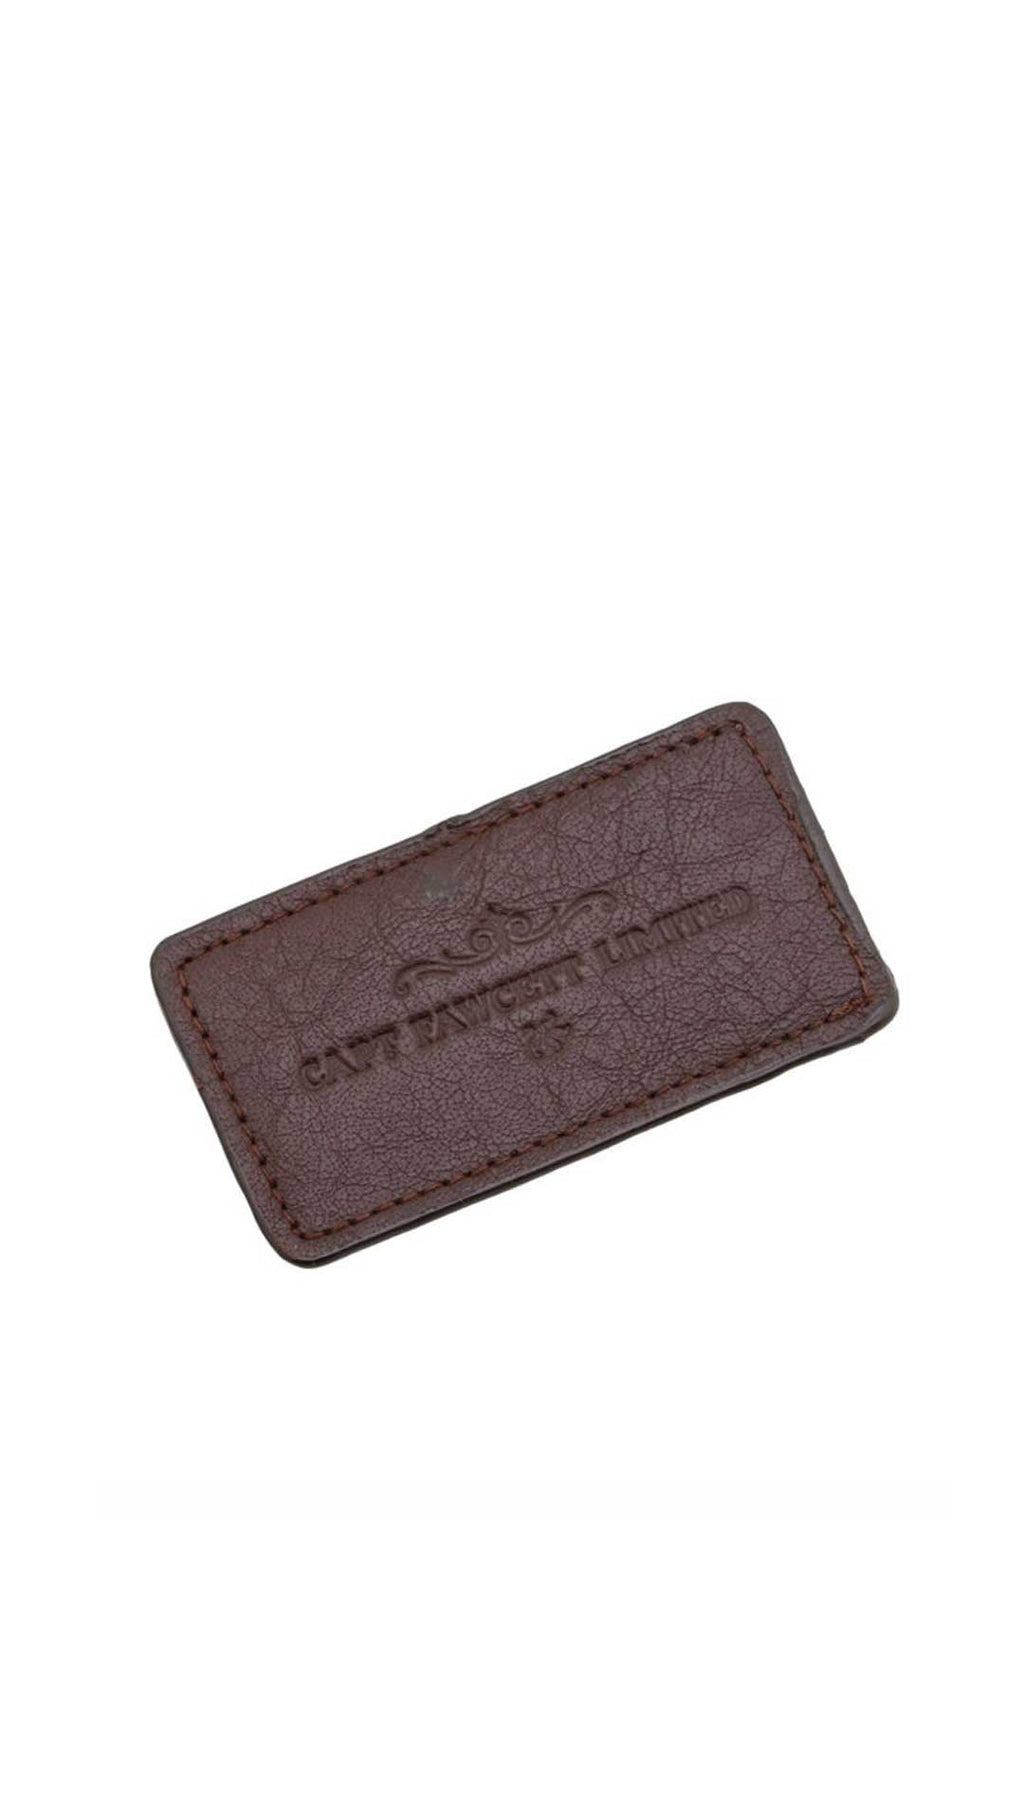 LEATHER SLEEVE FOR MOUSTACHE COMB - ÉTUI CUIR PEIGNE MOUSTACHE - CAPTAIN FAWCETT